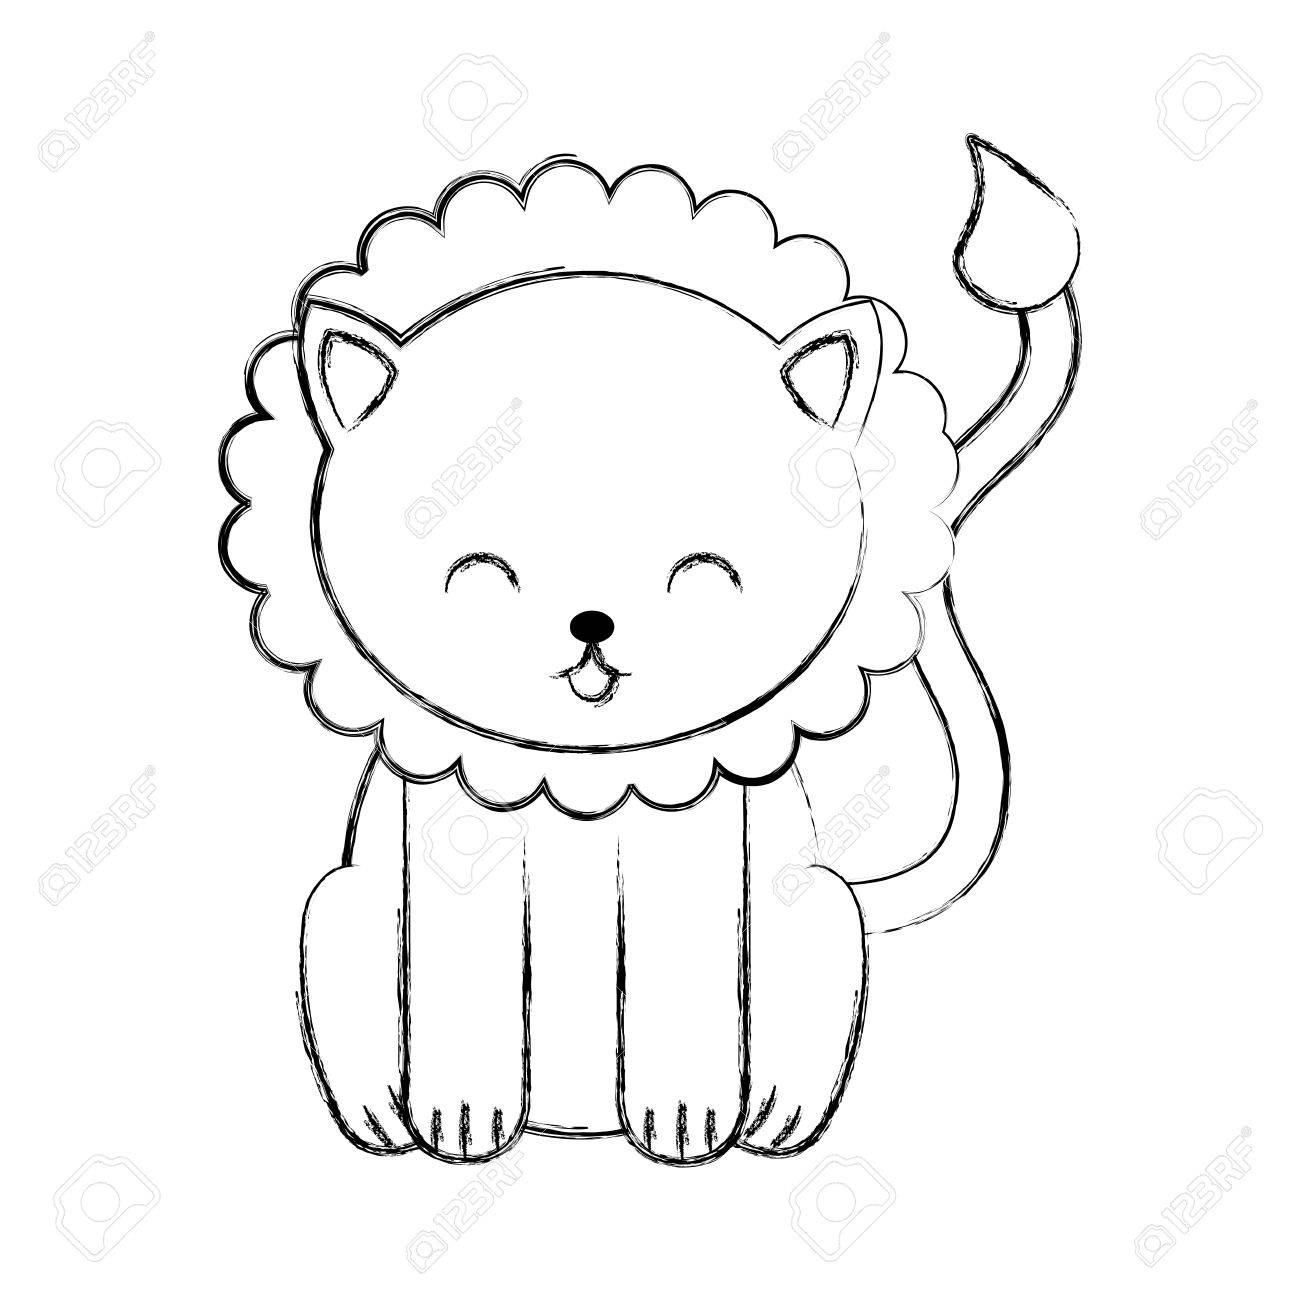 Cute Sketch Draw Lion Cartoon Graphic Design Royalty Free Cliparts Vectors And Stock Illustration Image 79178764